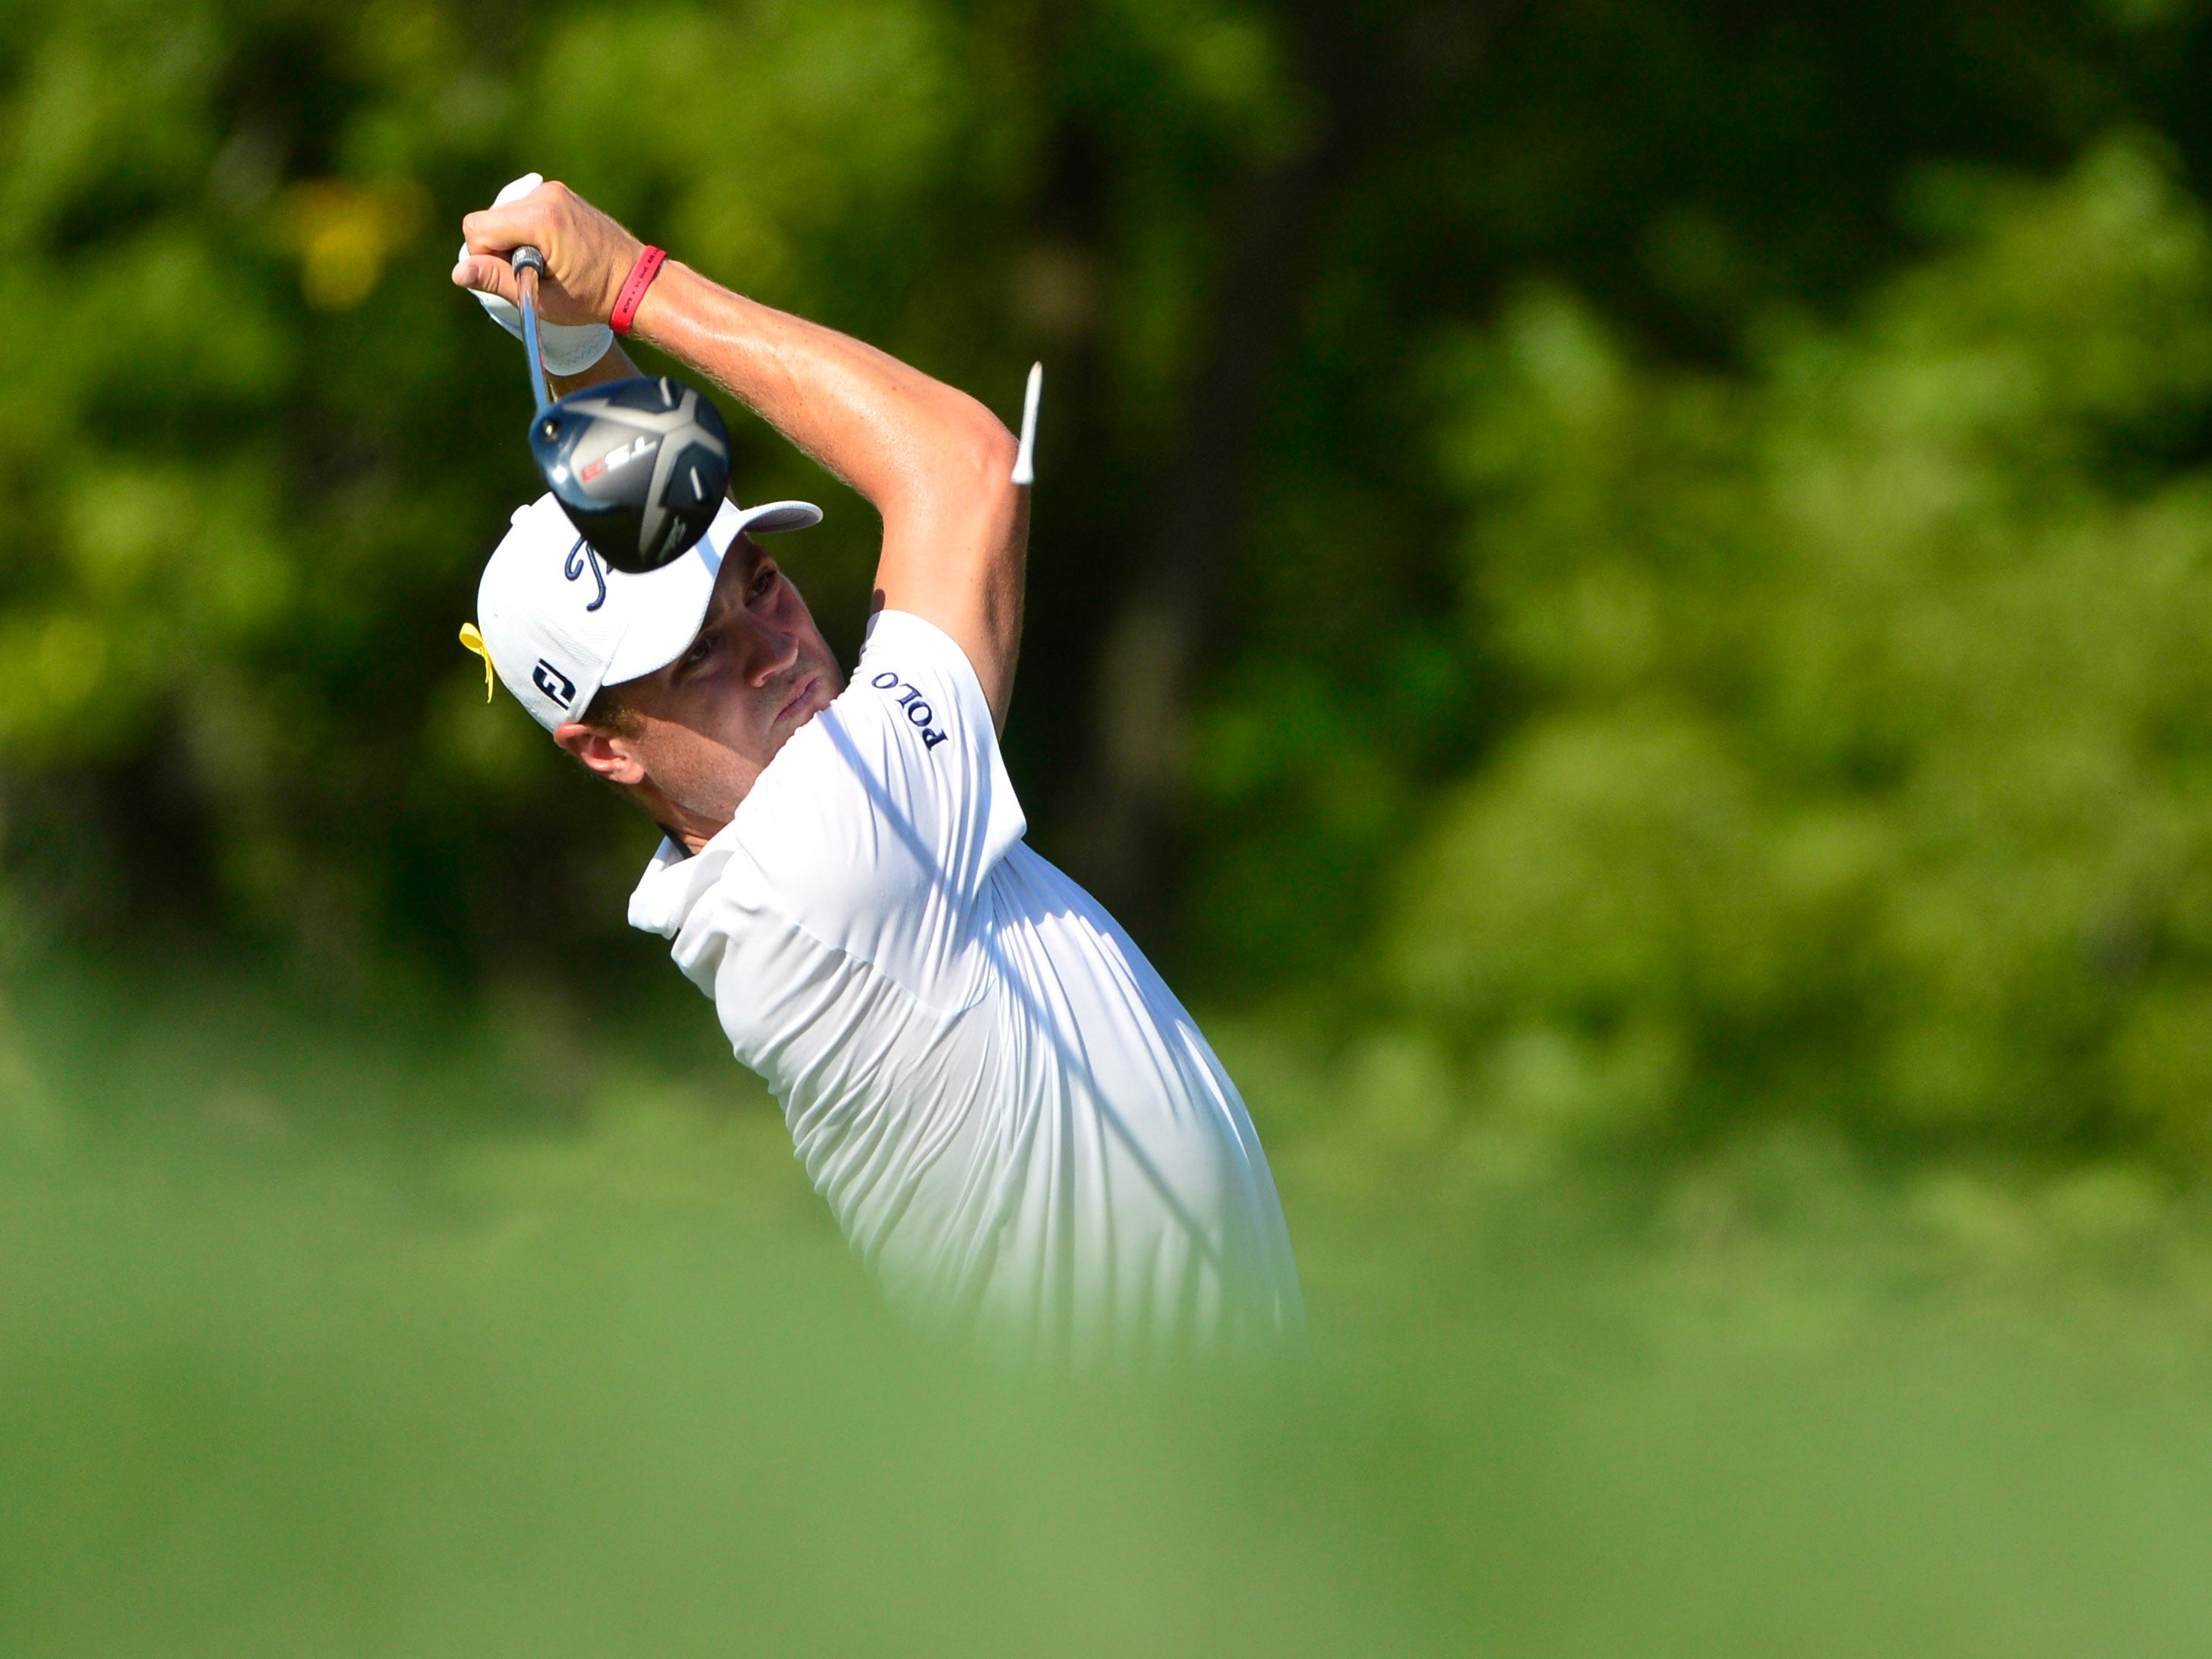 Justin Thomas hits his tee shot on the 12th hole during the first round of the PGA Championship.